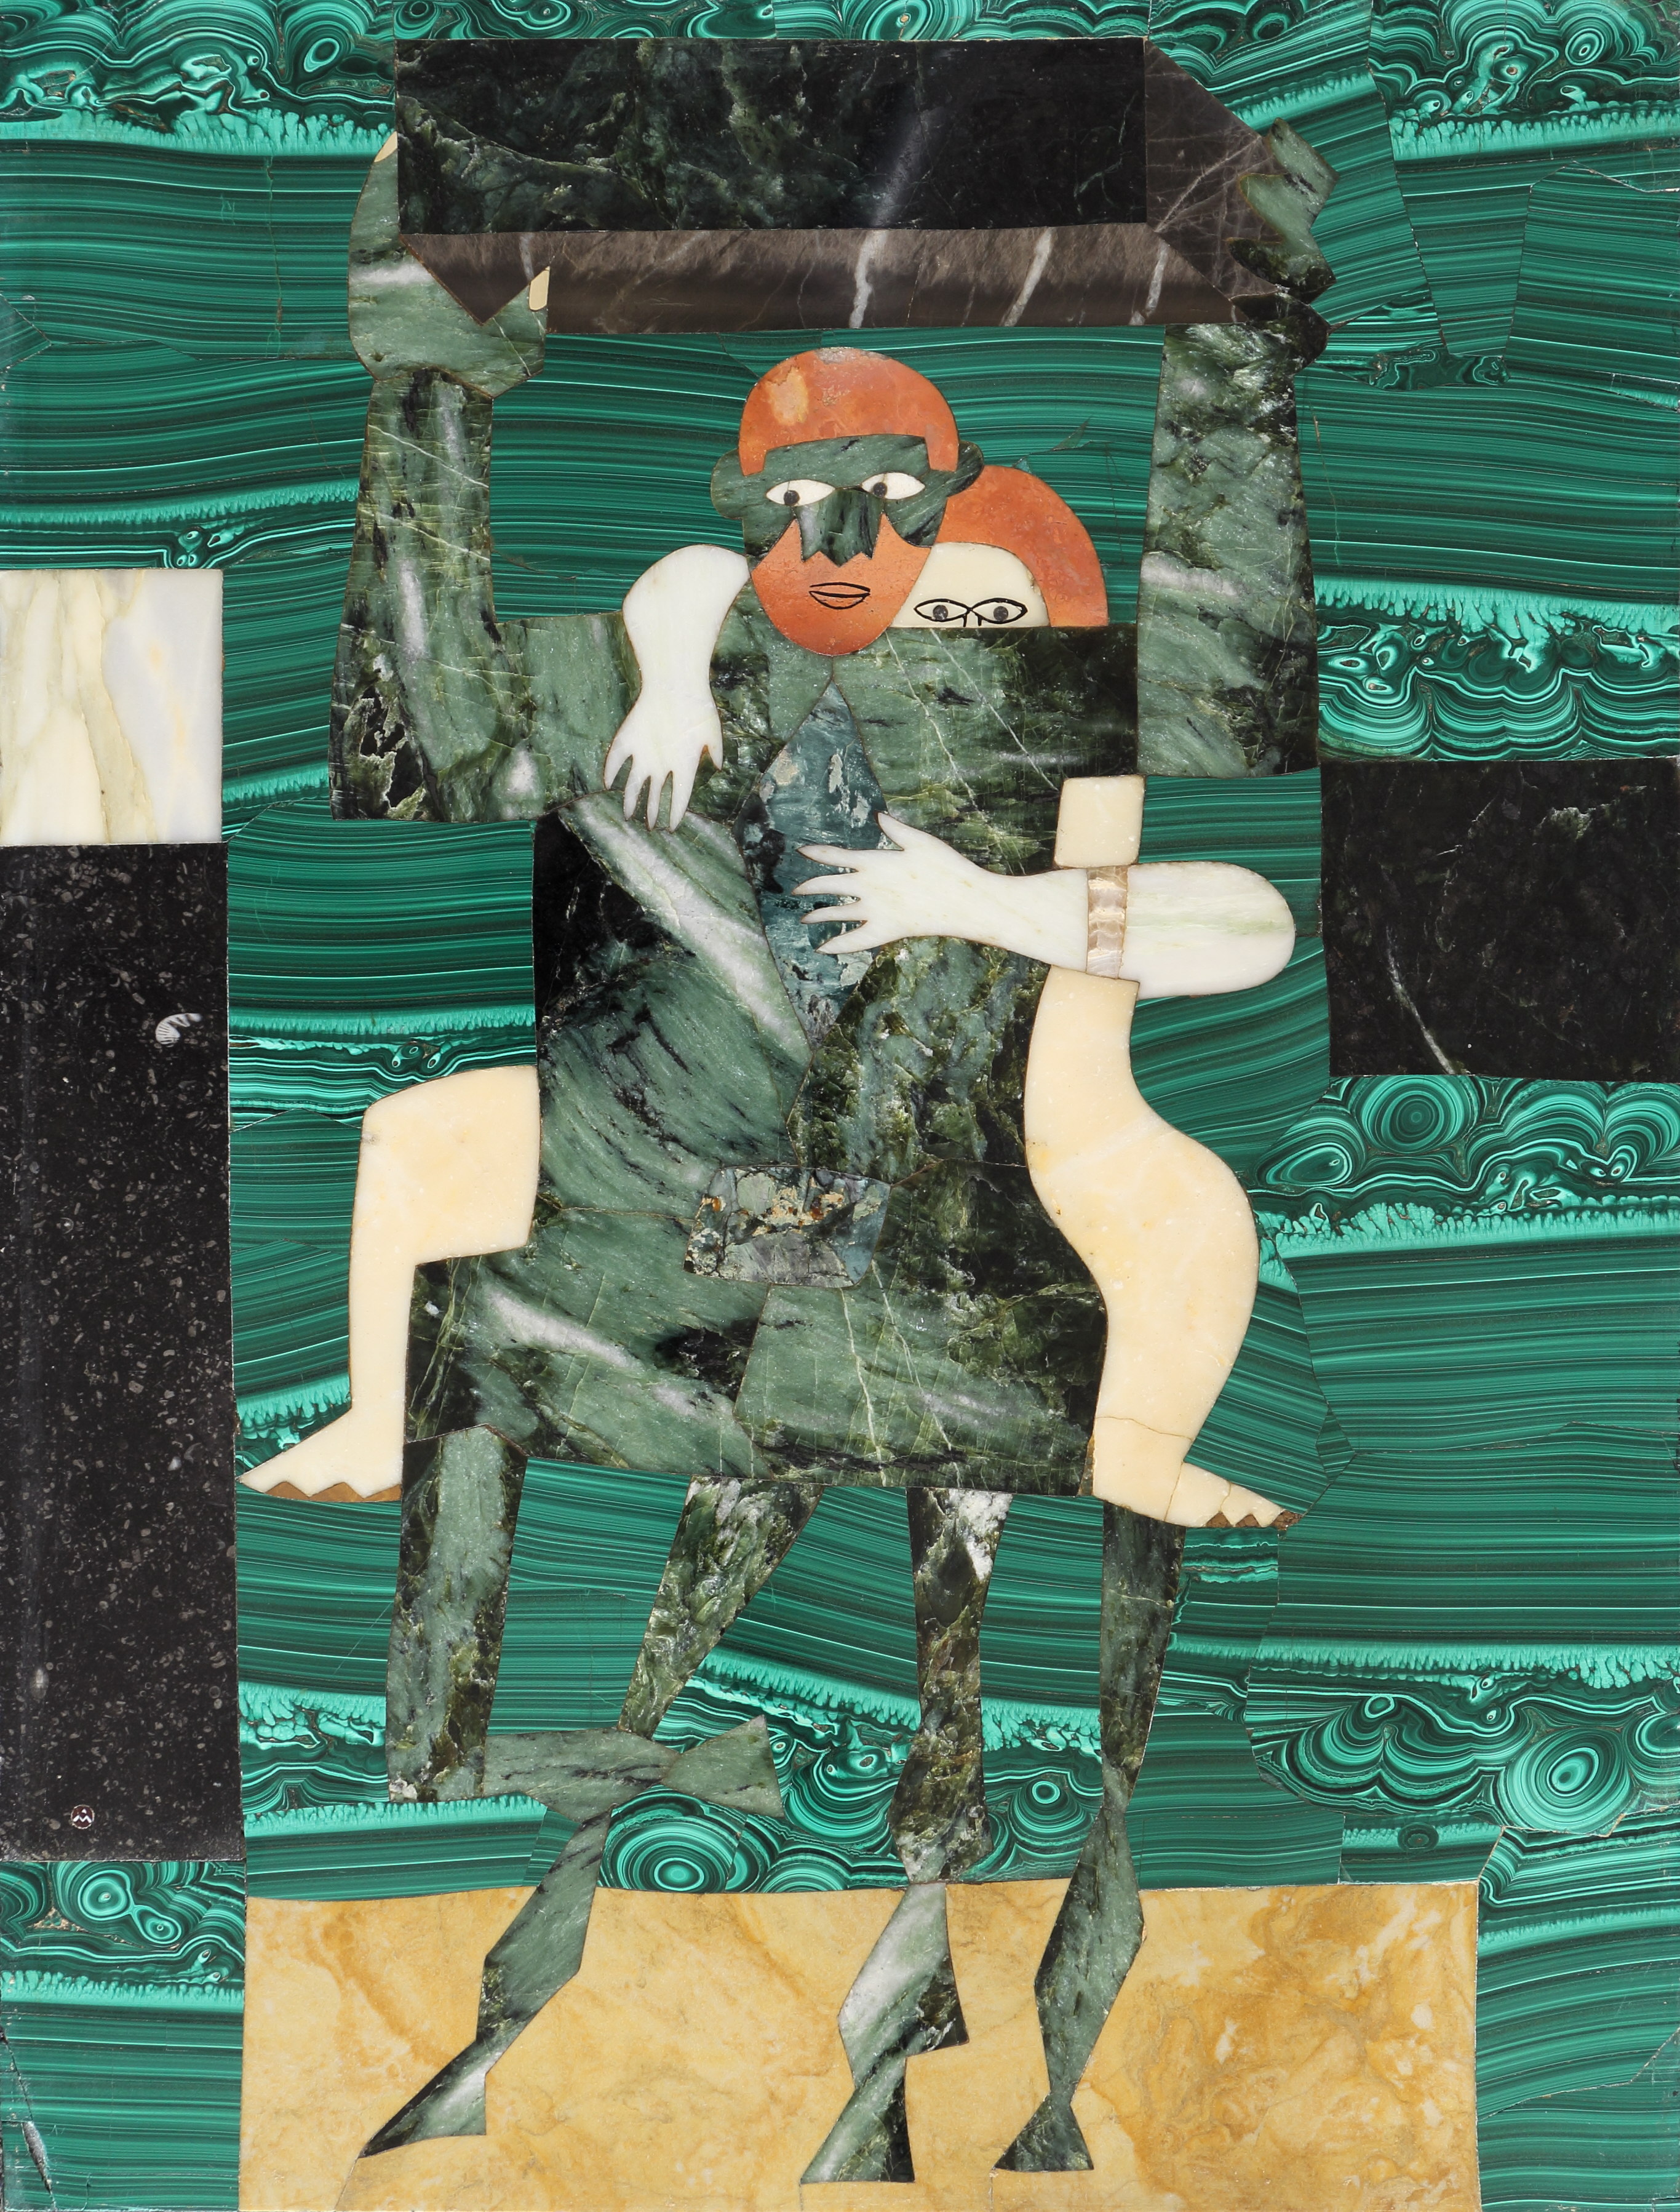 Untitled artwork by Richard Blow - art listed for sale on Artplode